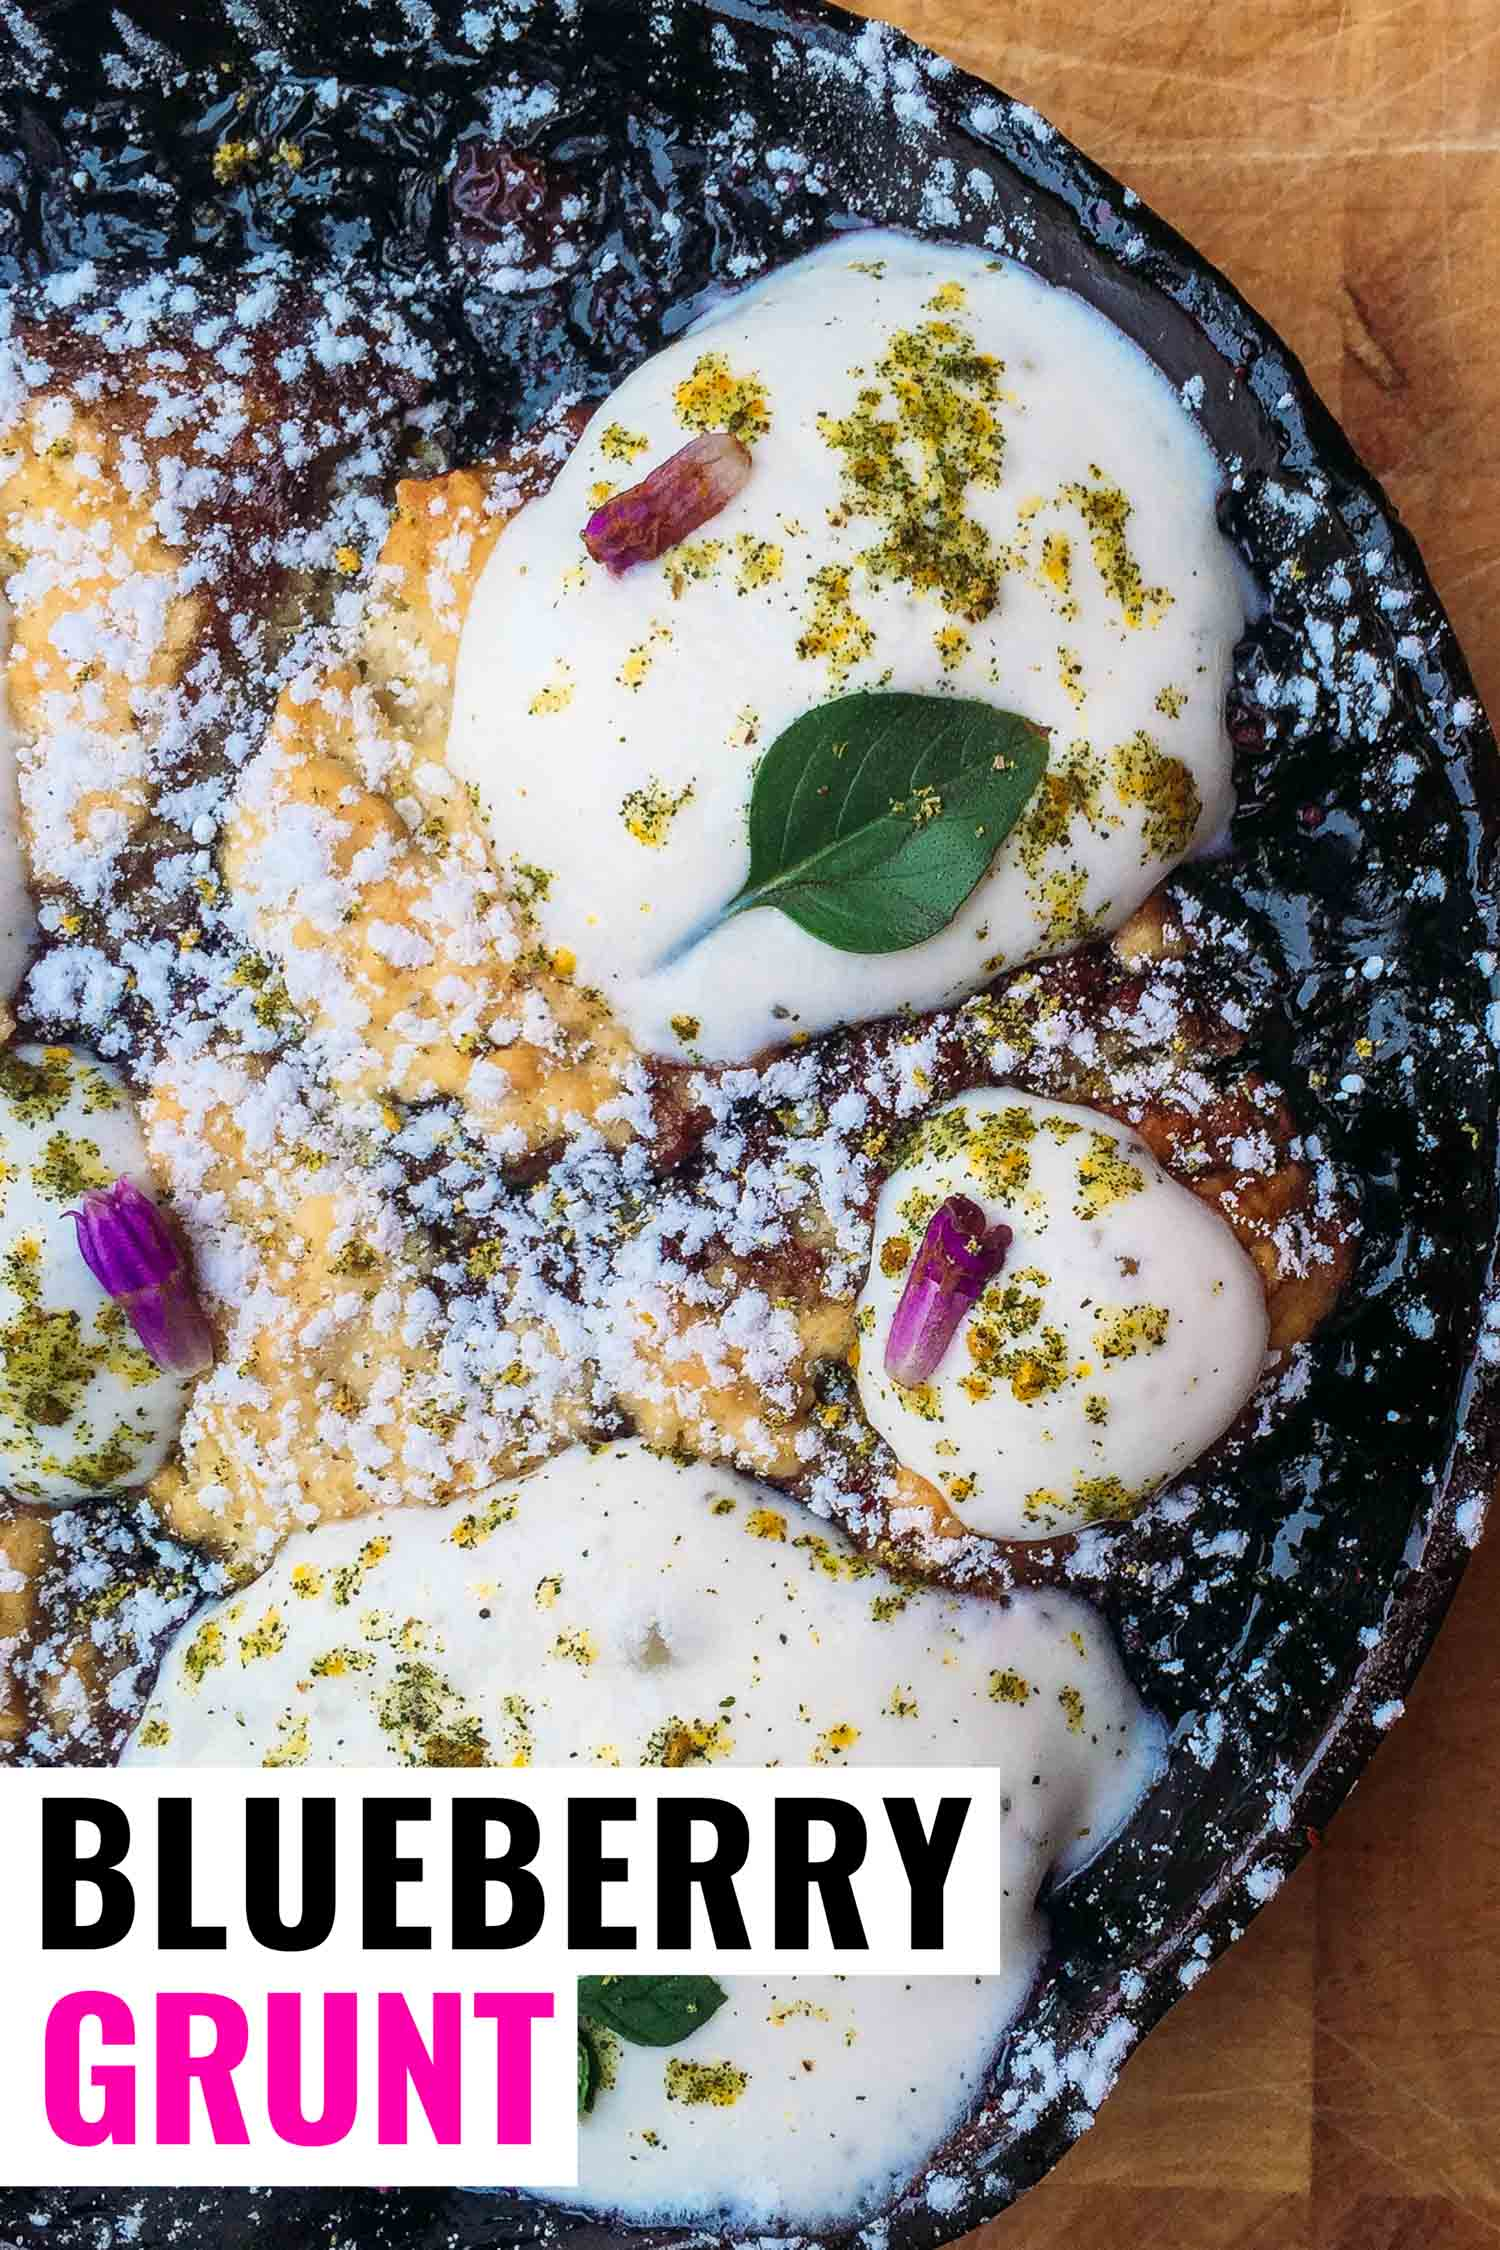 Blueberry grunt in a cast iron pan